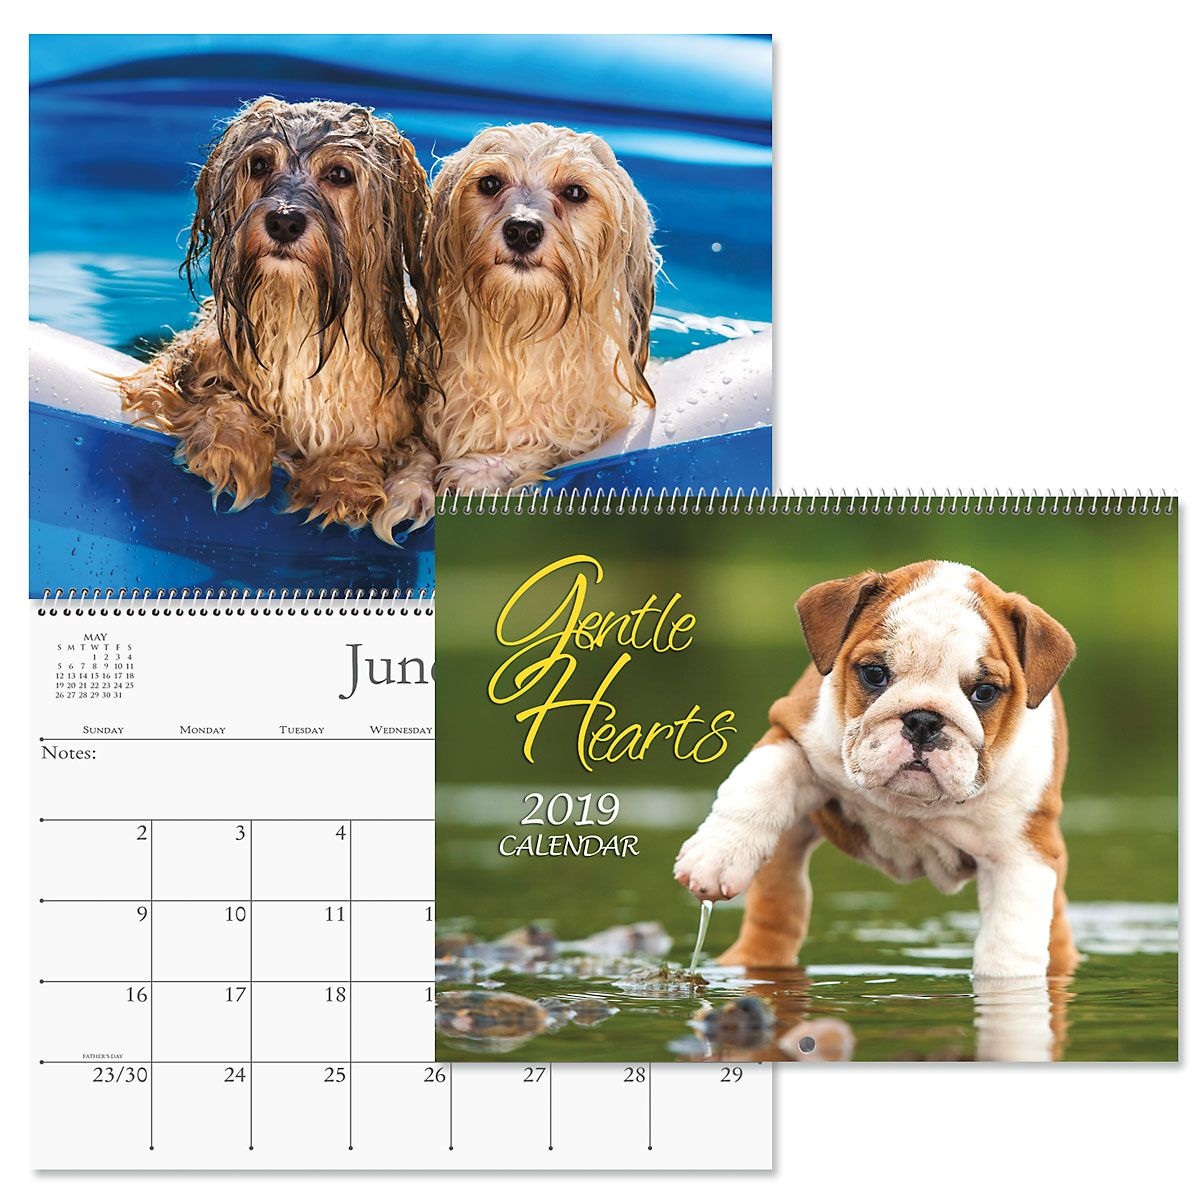 2019 Gentle Hearts Dogs Wall Calendar